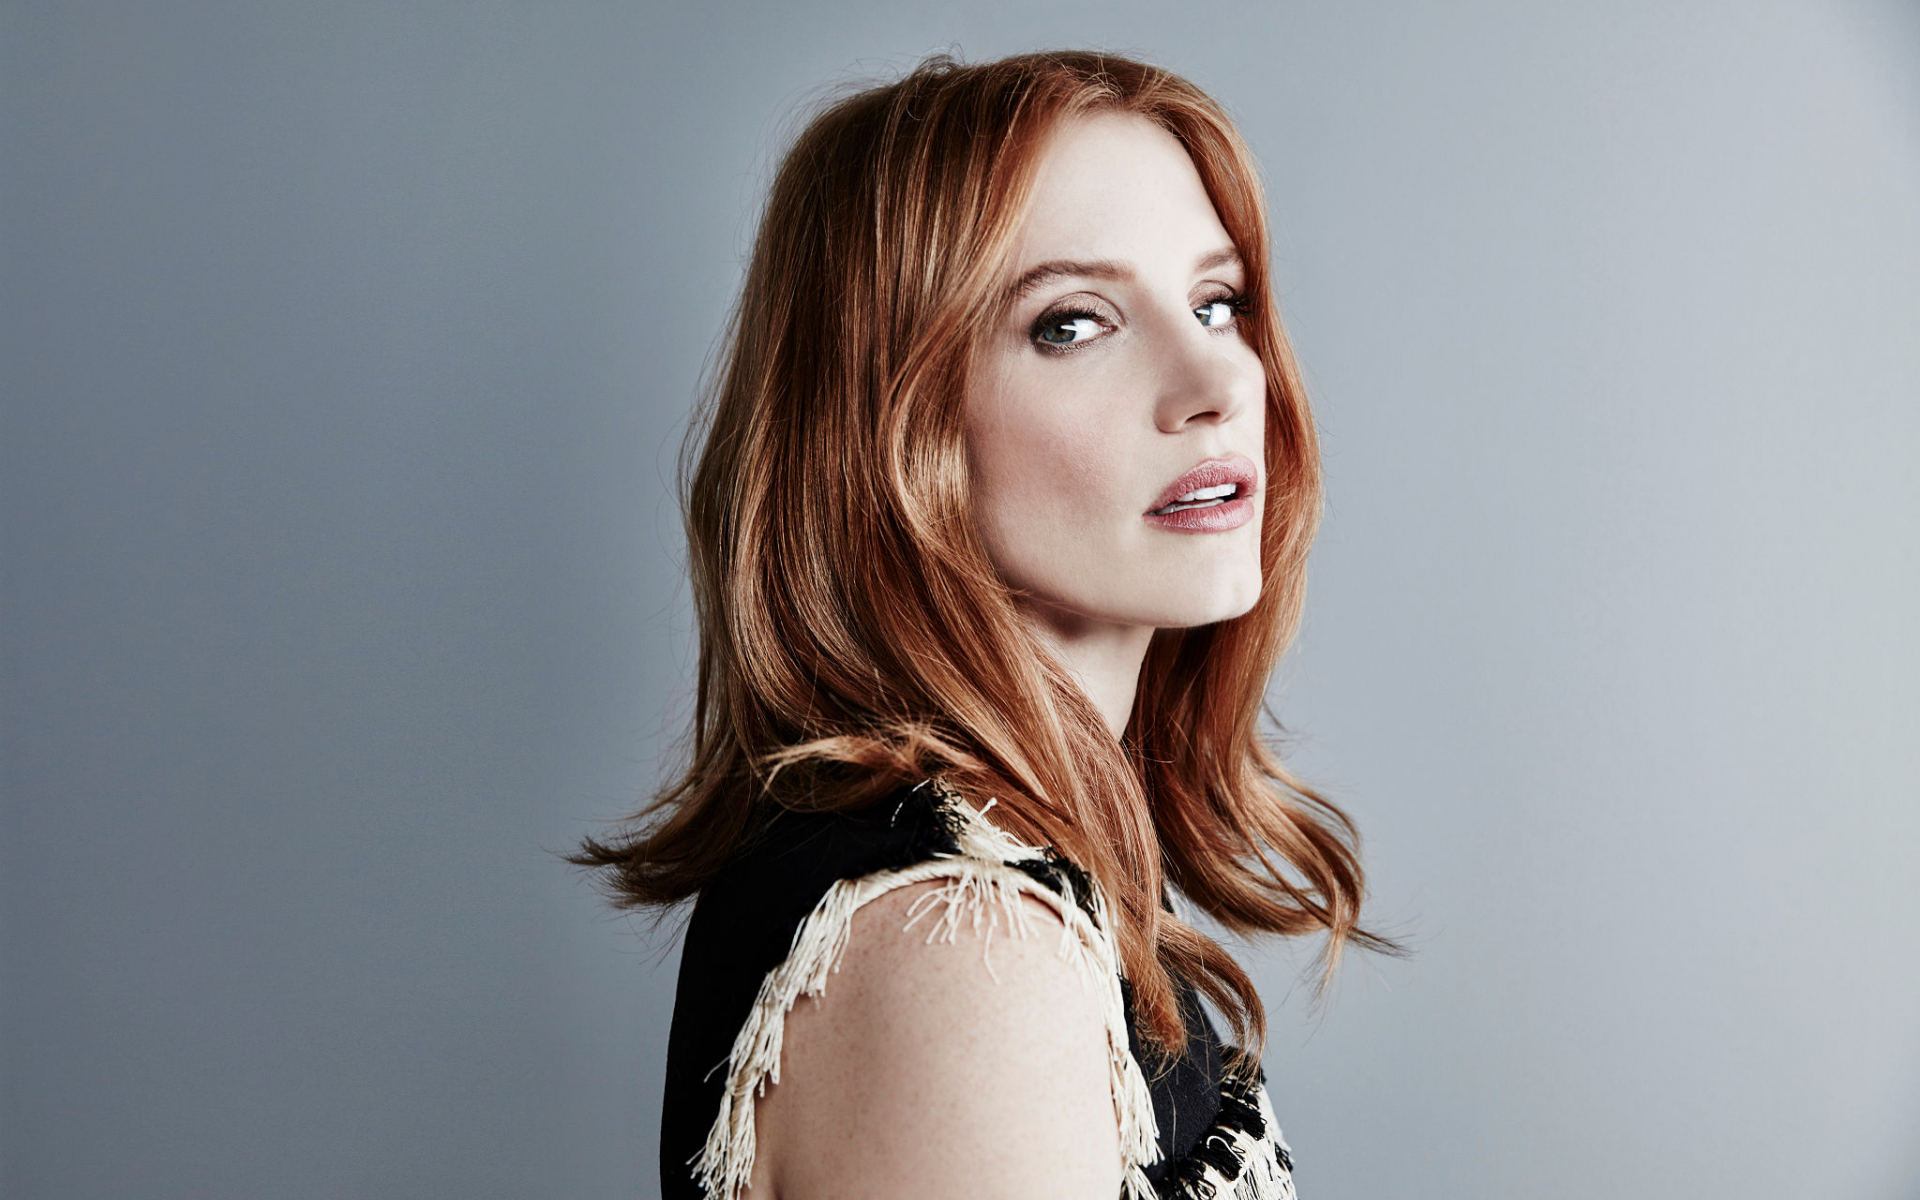 1920x1200 wallpaper Jessica chastain, red head, actress